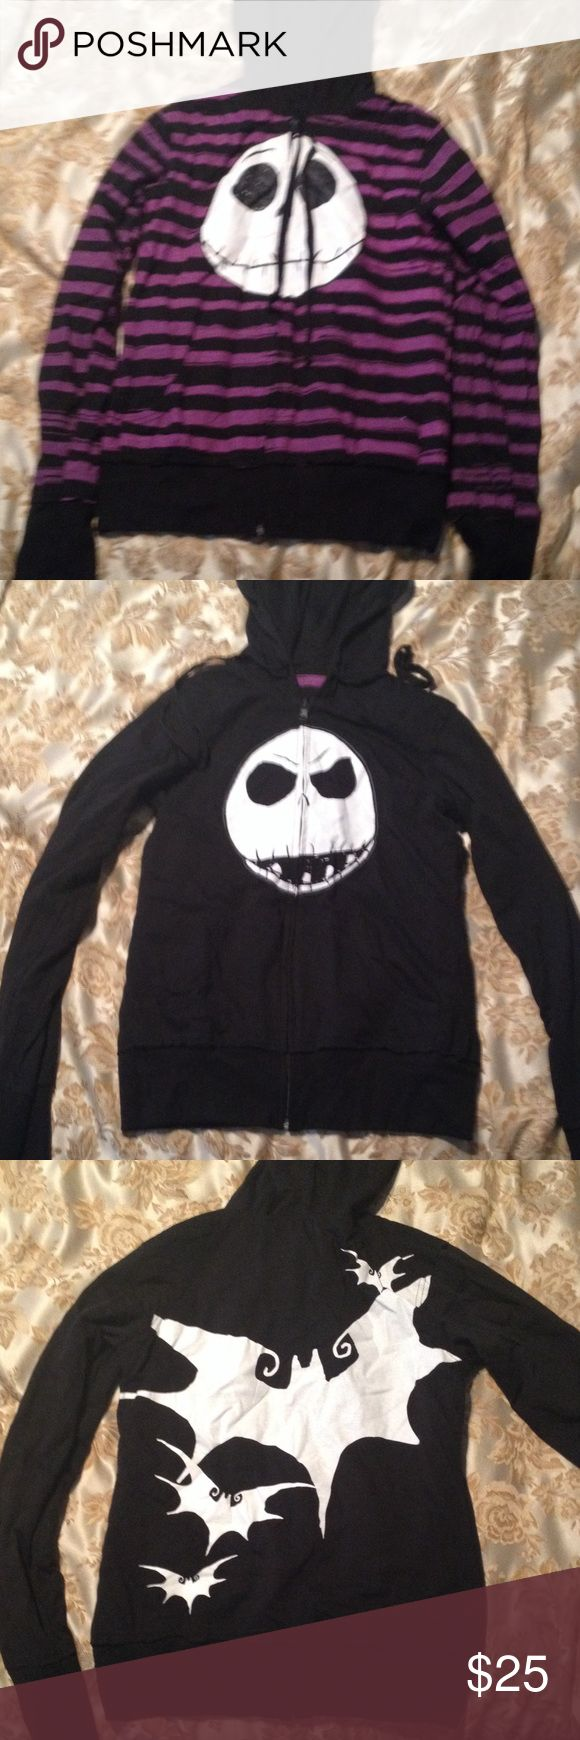 The Nightmare Before Christmas Hoodie From Hot Topic's collection is this reversible front zip hoodie with front pockets on both sides Jack Skellington smiling with black and purple stripes.  On the other side is black with everybody's favorite pumpkin king grimacing  bats fly off on the back of the black side.  Size L.  60% cotton,40% polyester.  Care instructions on label inside black/purple side front pocket.  Switch it up with your mood! All hail the Pumpkin King  Tops Sweatshirts…